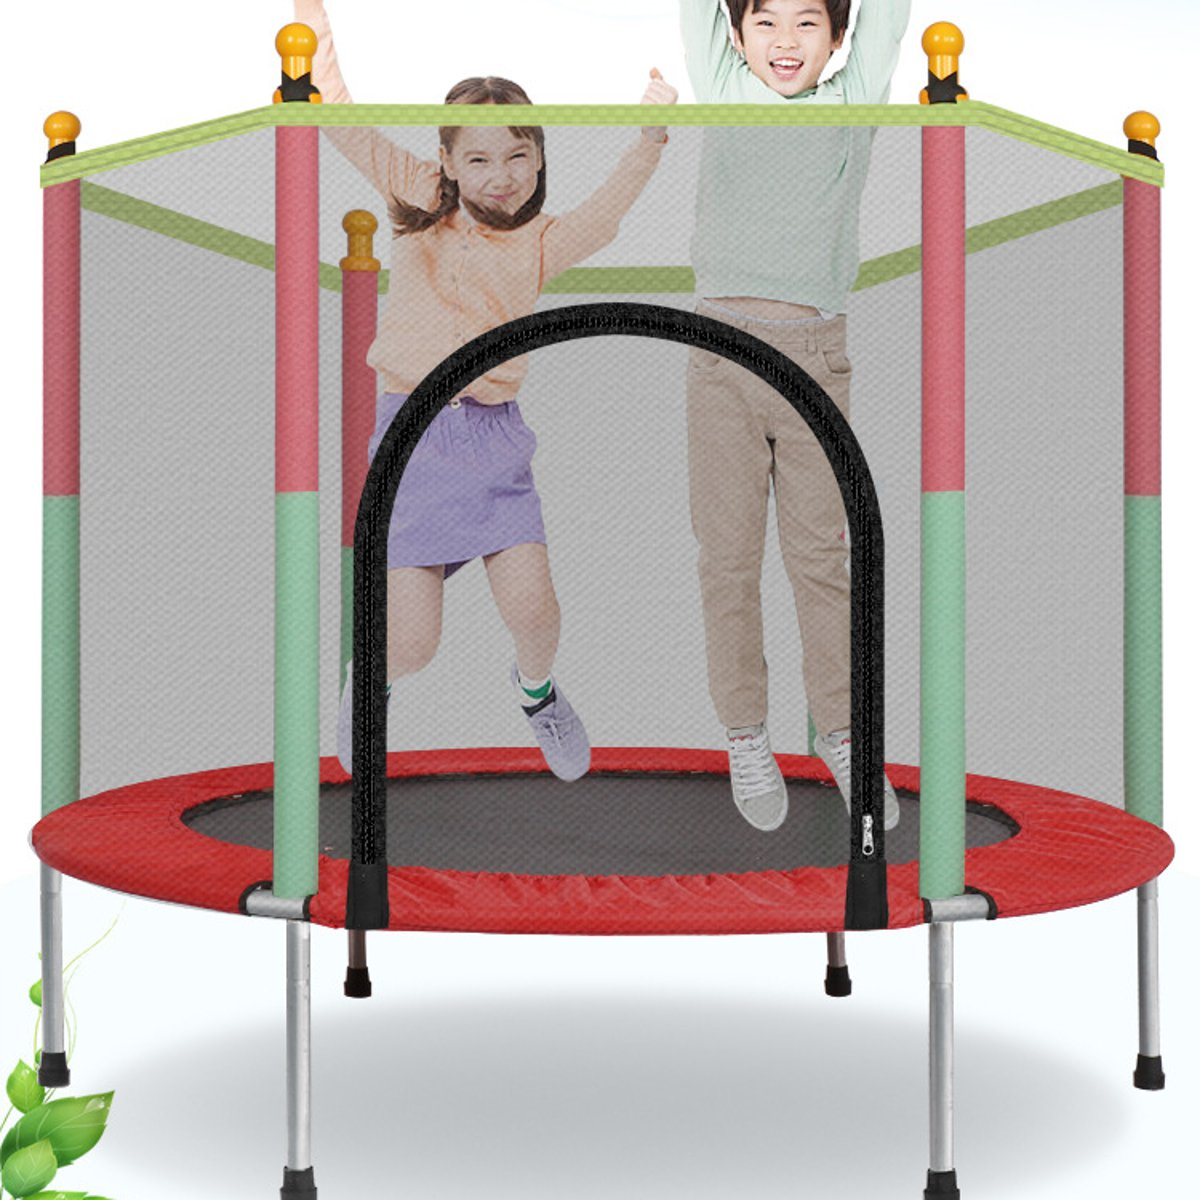 Round Indoor Trampoline With Protection Net Jumping Bed Outdoor Trampolines Exercise Bed Fitness Equipment Adult Children